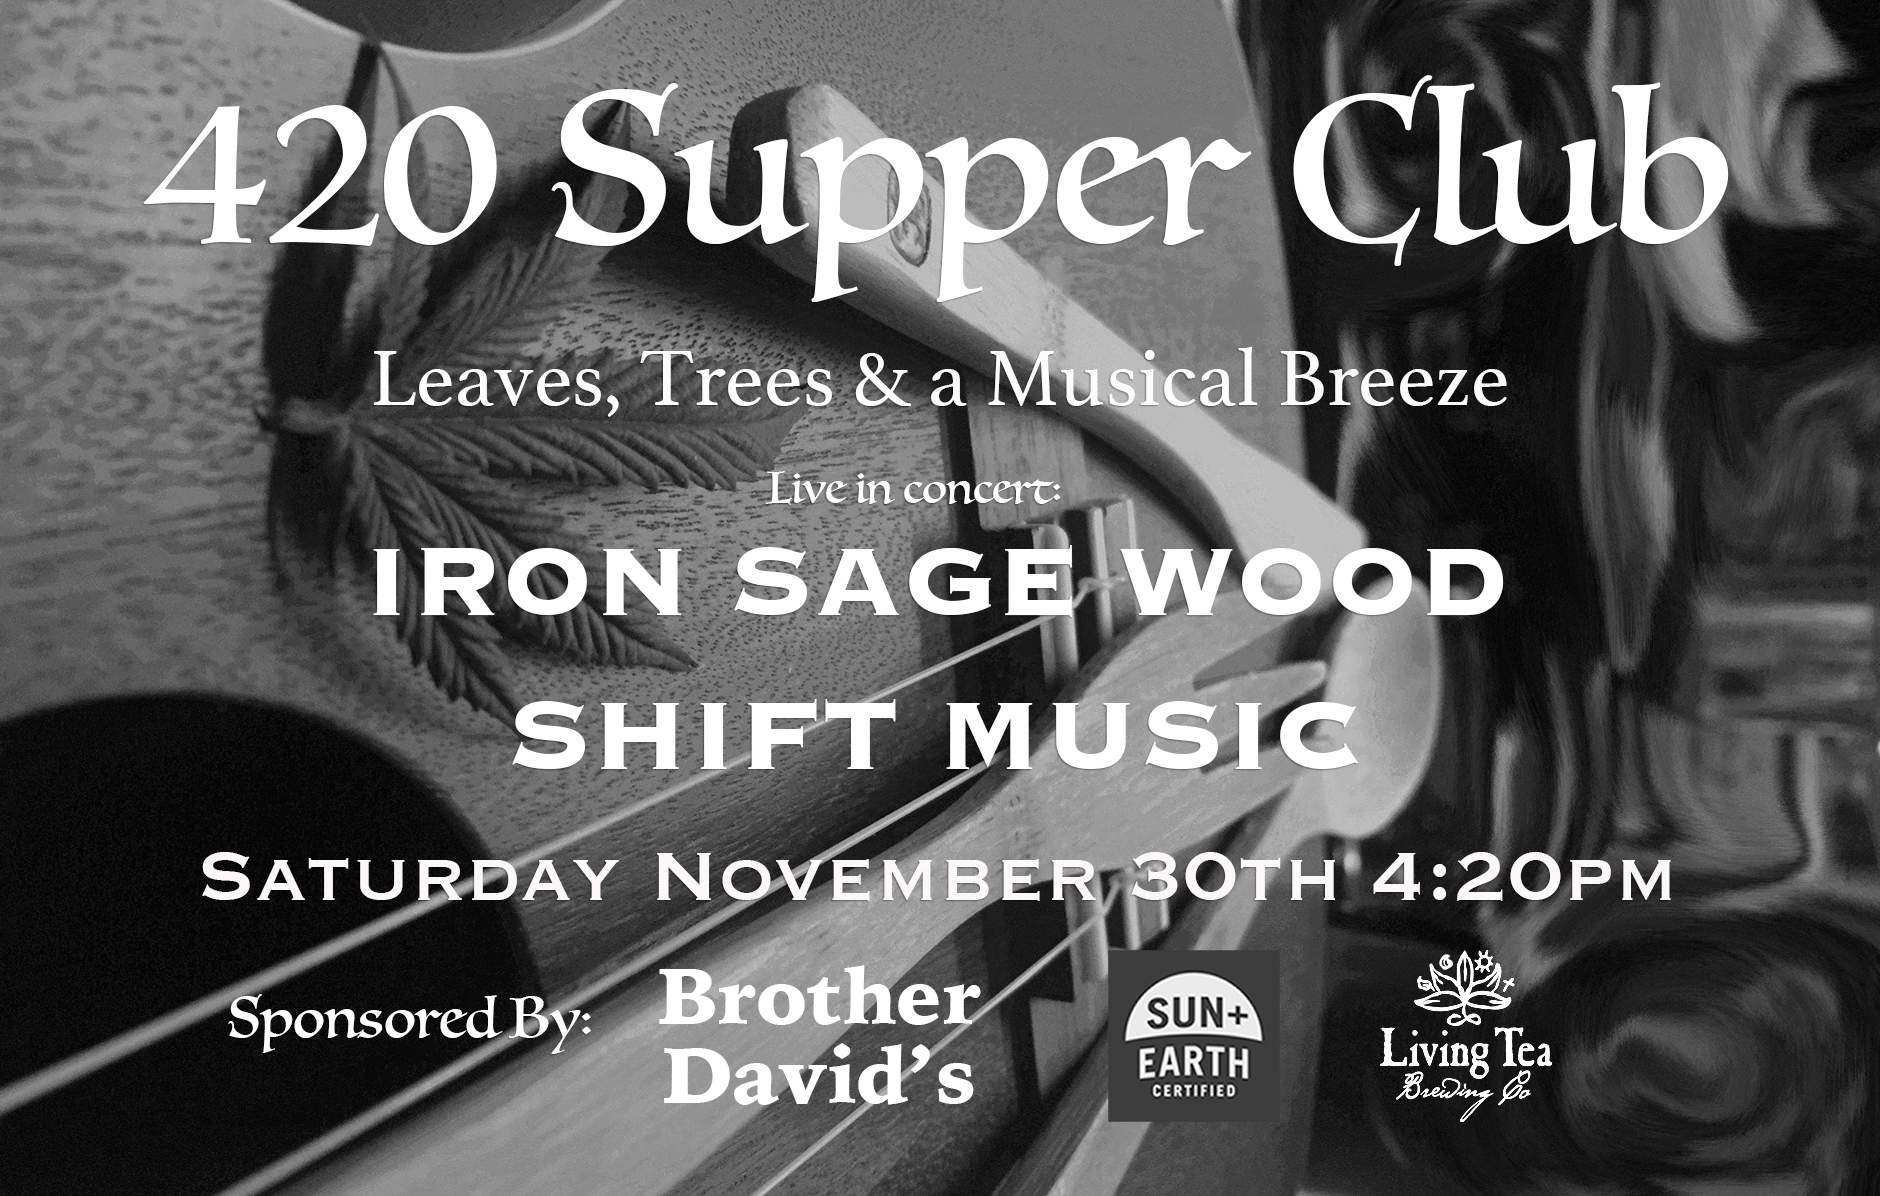 420 Supper Club - 4 course Dinner & Show